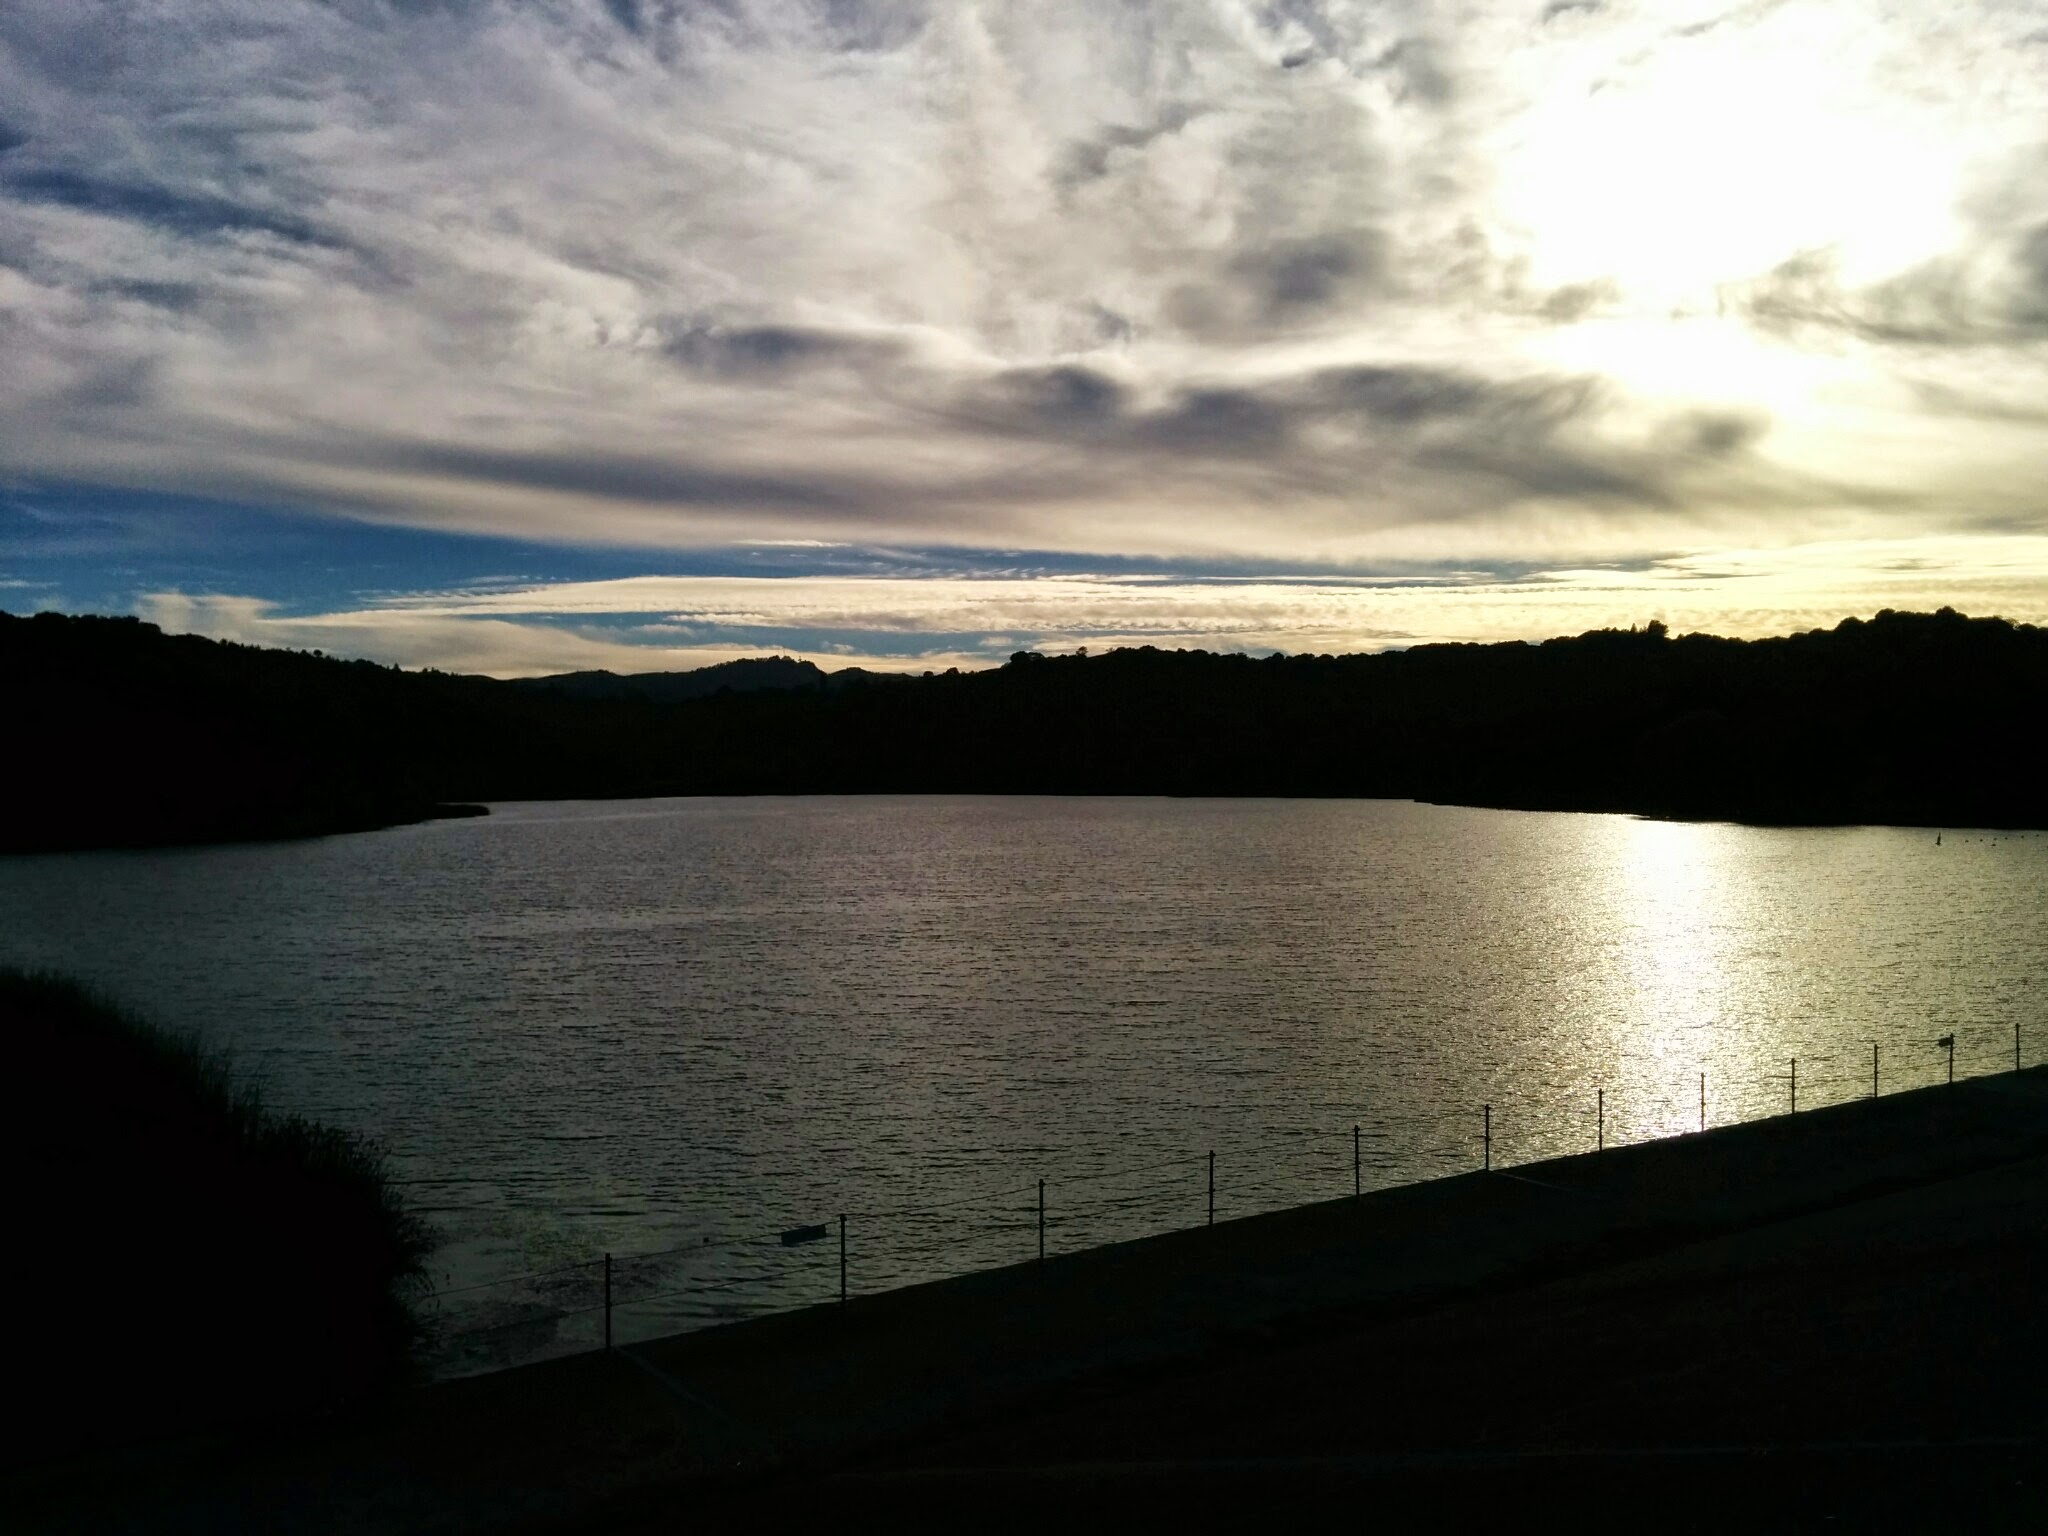 Sunset at Lafayette reservoir